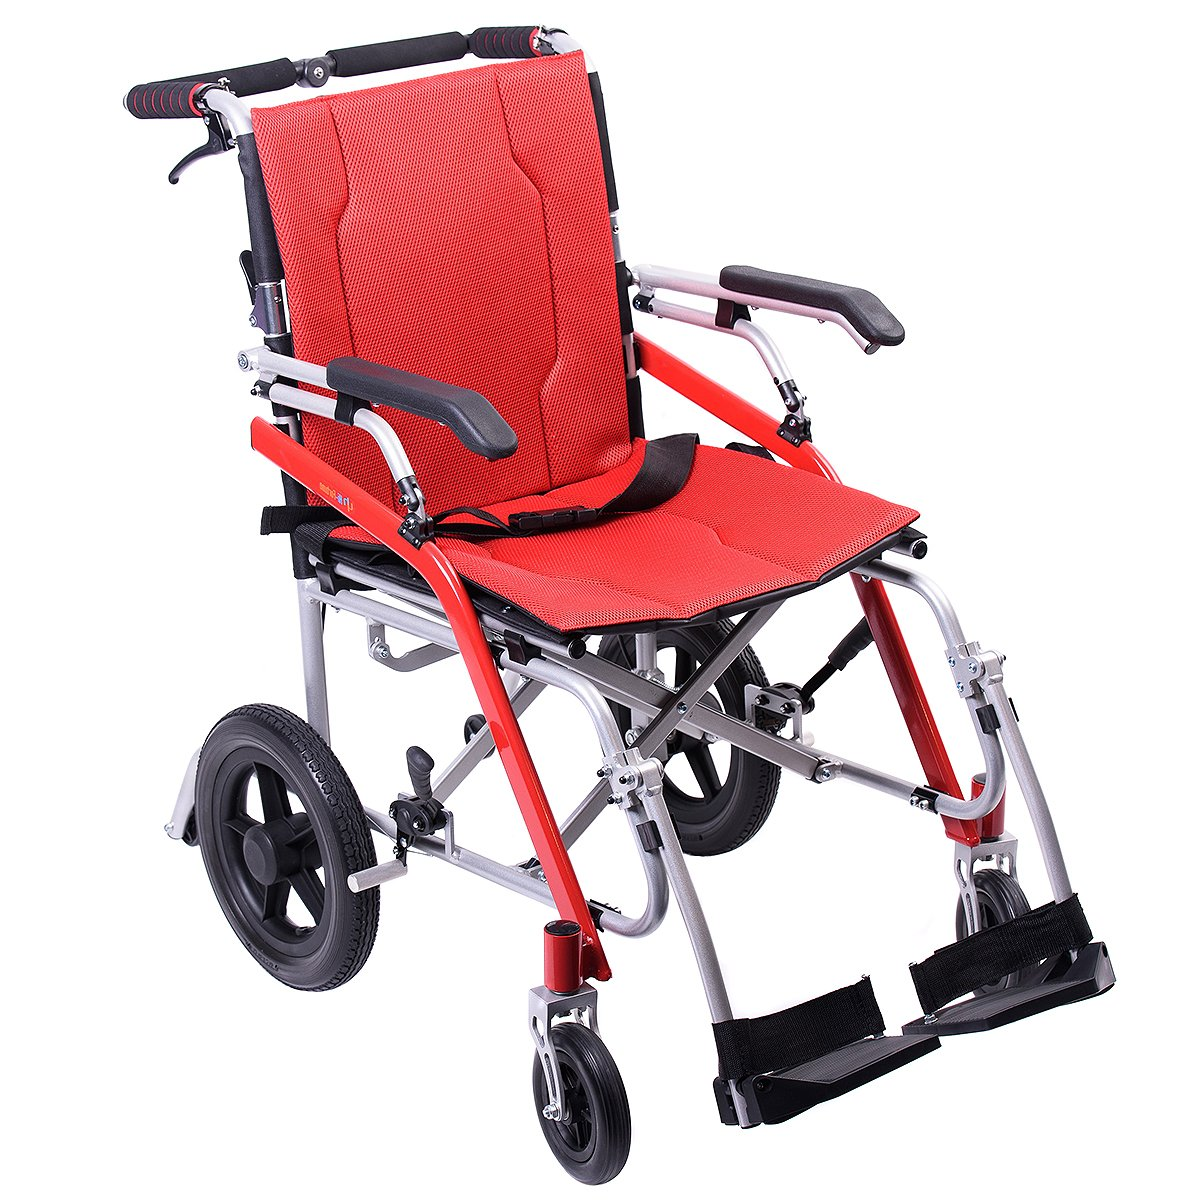 """Hi-Fortune Lightweight Transport Medical Wheelchair with Adjustable Armrests and Hand Brakes, Portable and Folding with Magnesium Alloy, 18"""" Seat, Red, 21lbs"""